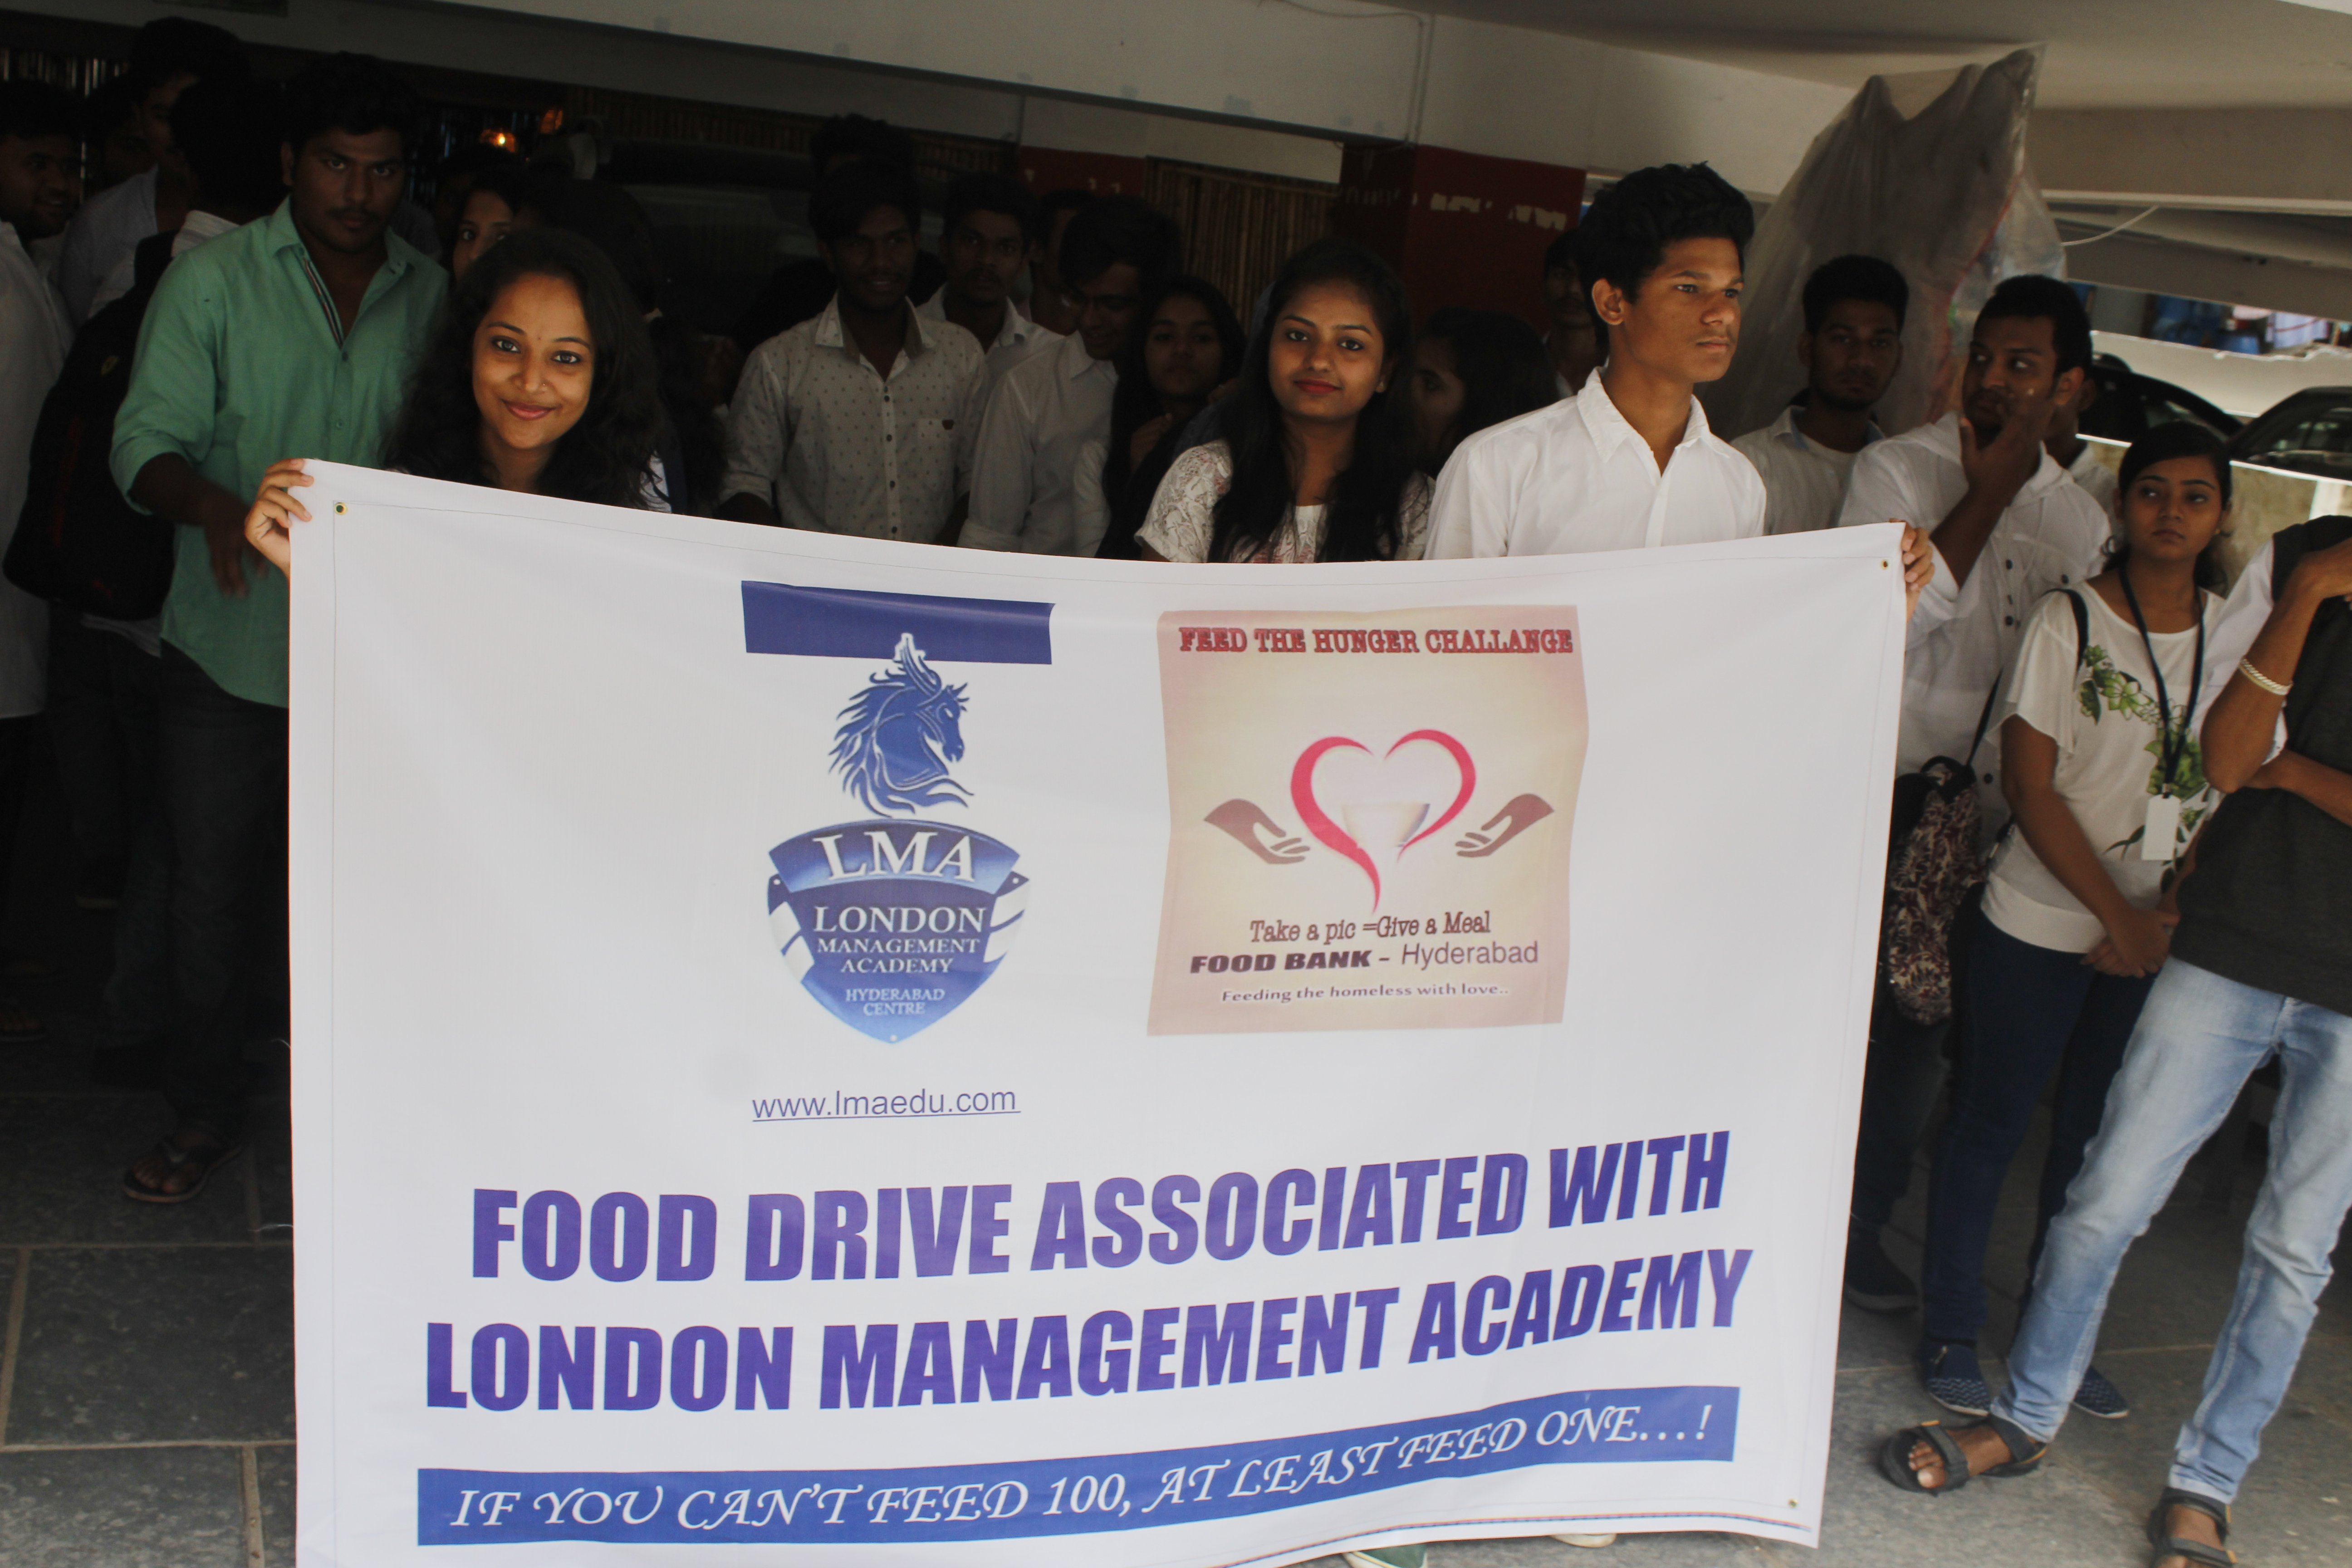 Fooddrive and Industrial Visit